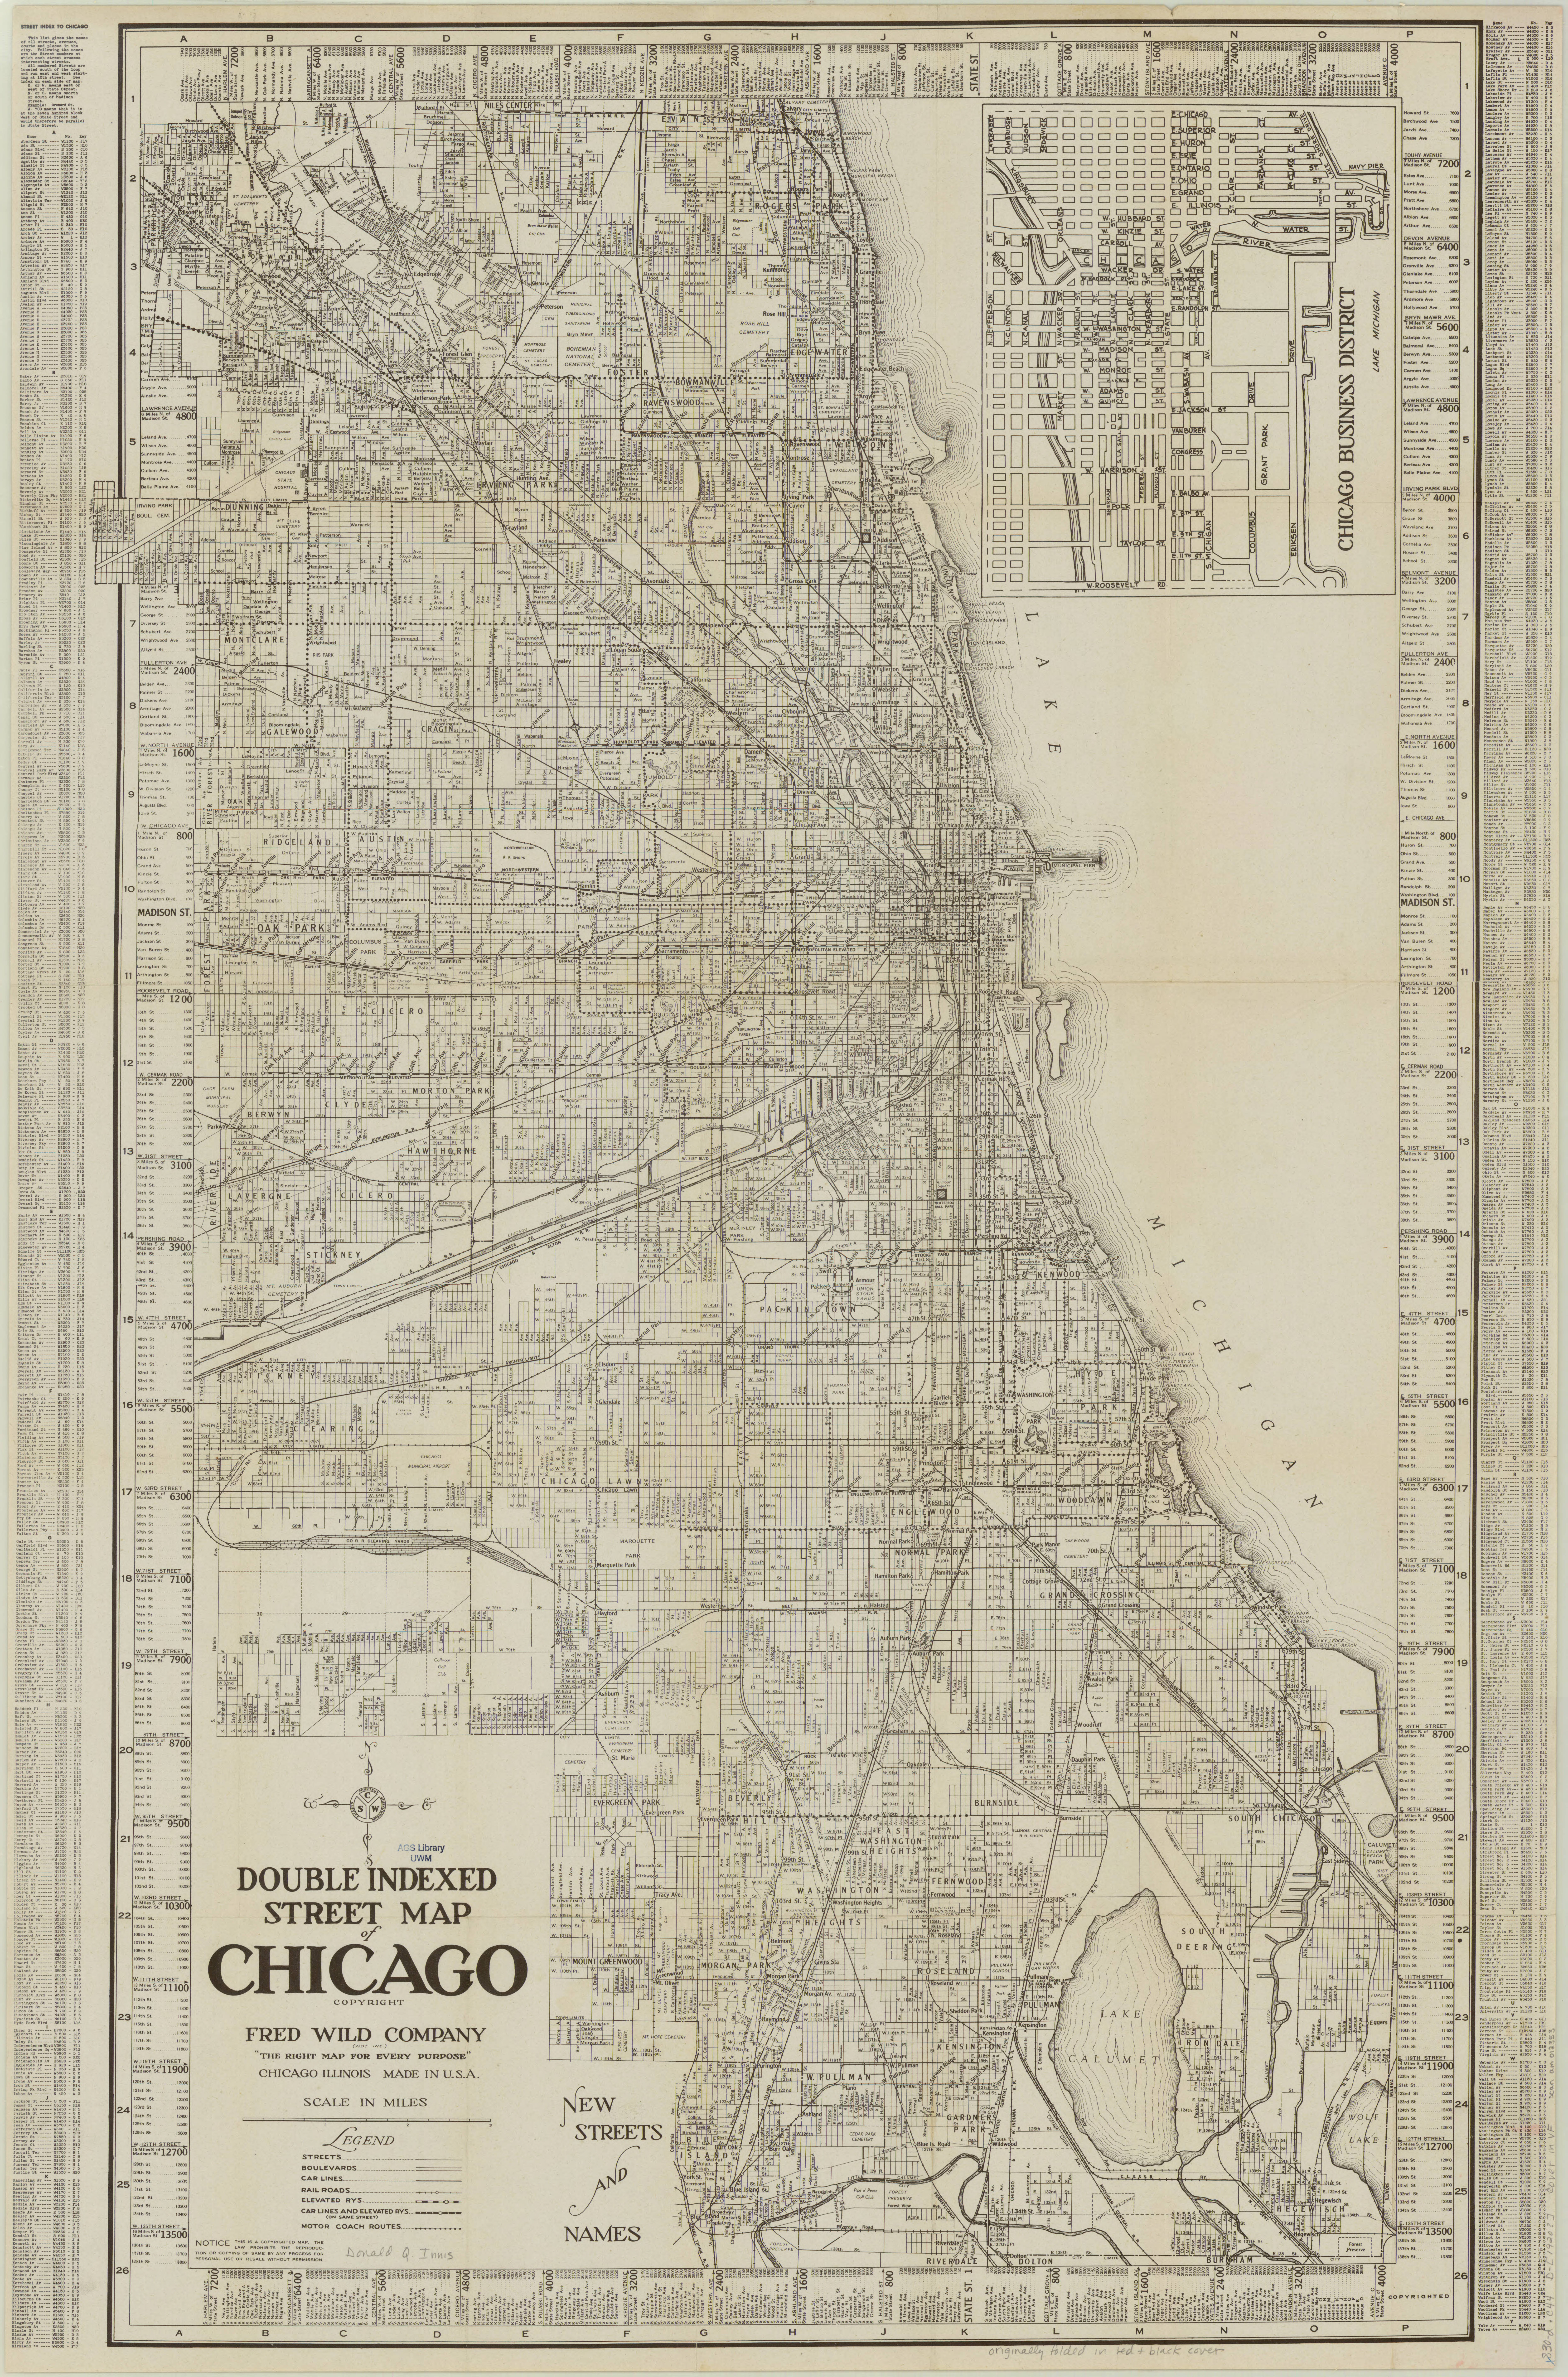 File:1920 Chicago map by Fred Wild.   Wikimedia Commons